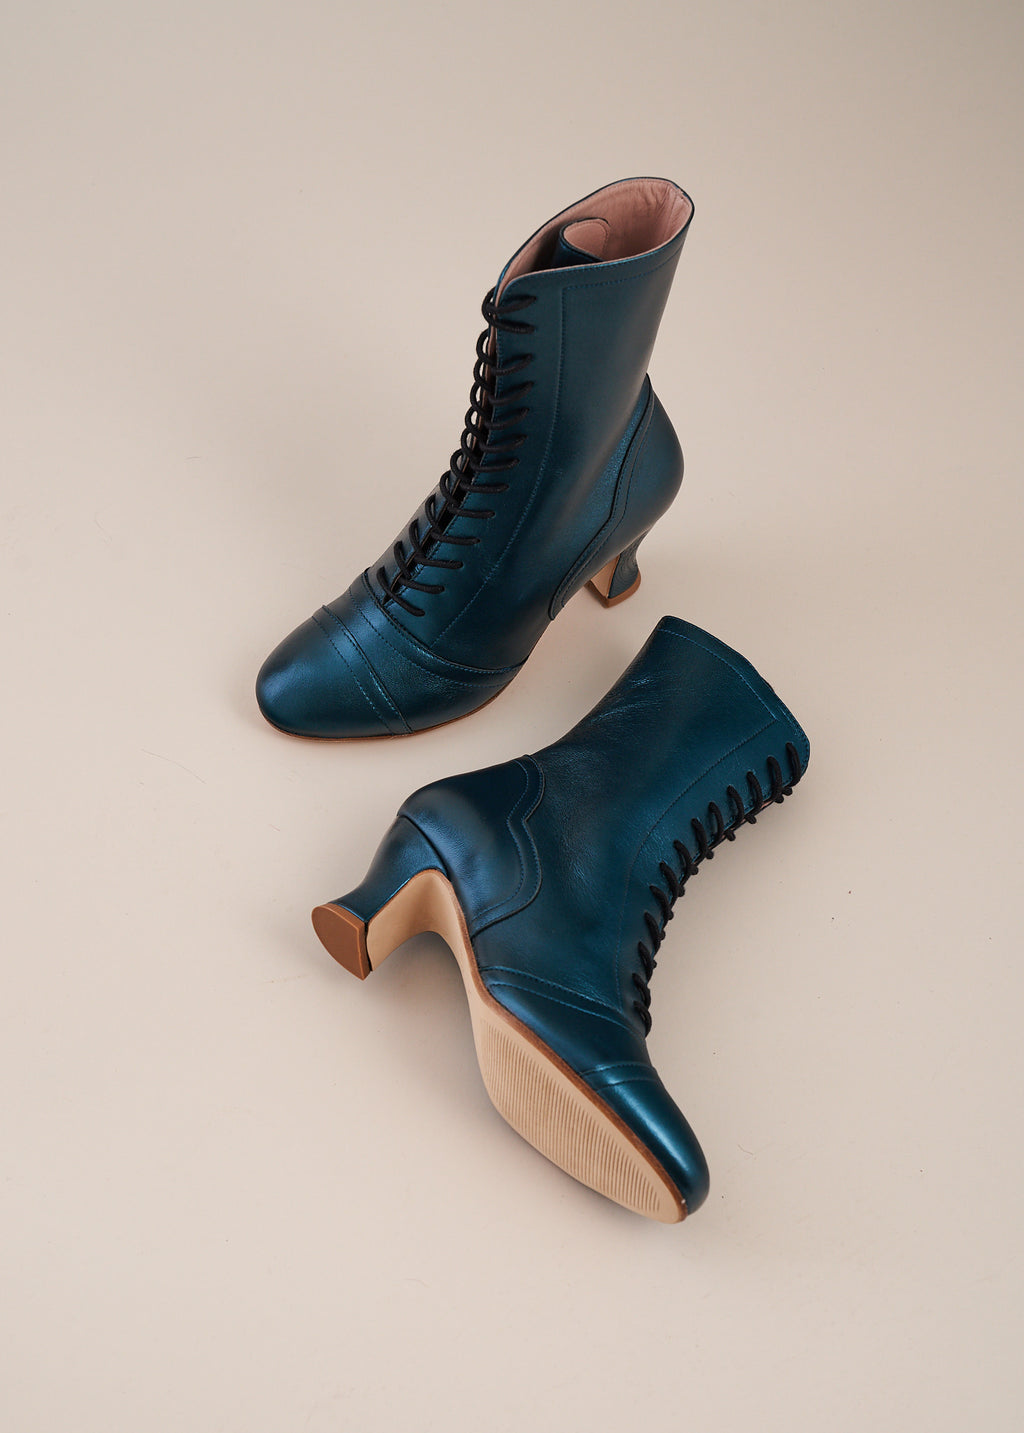 Frida Luxe Teal Metallic Leather